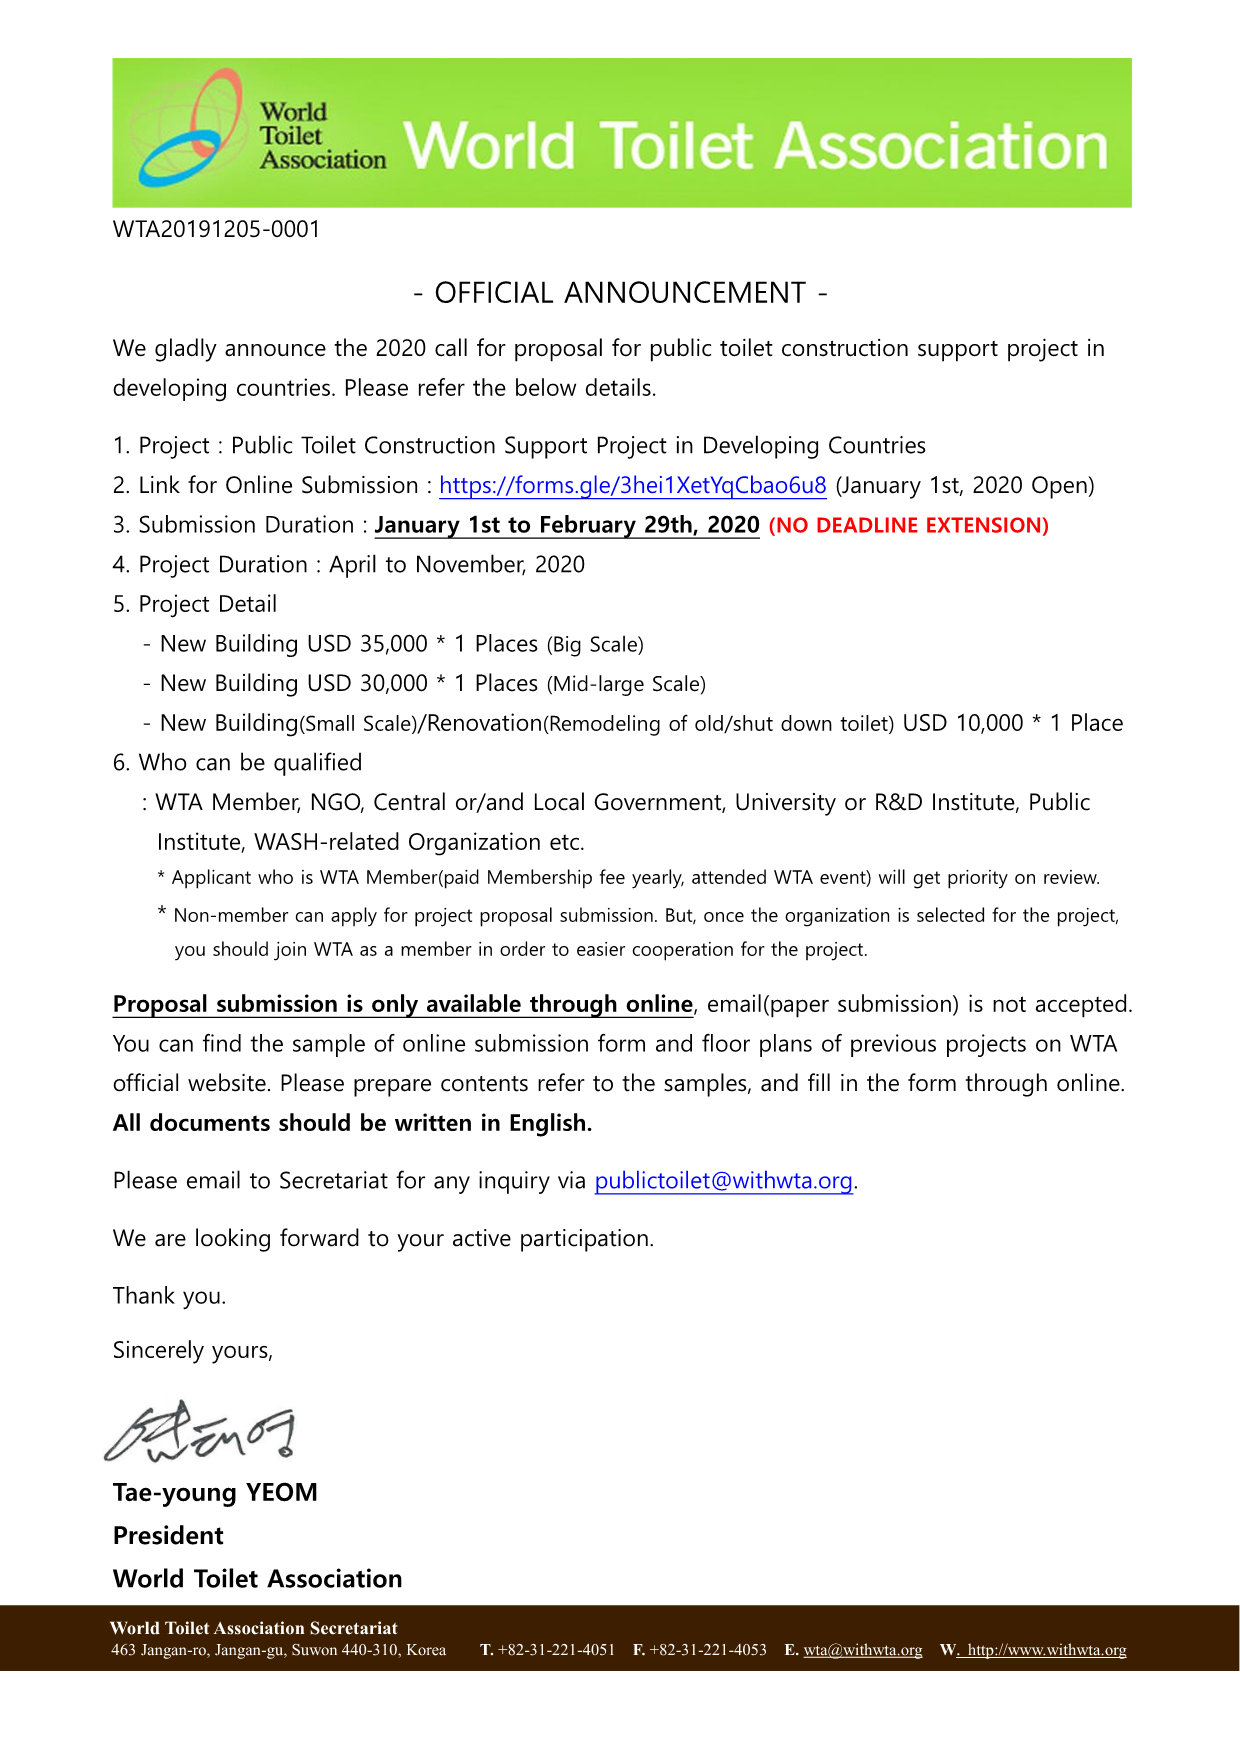 [Official Announcement] Call for 2020 PTCS Project Proposal_1.png